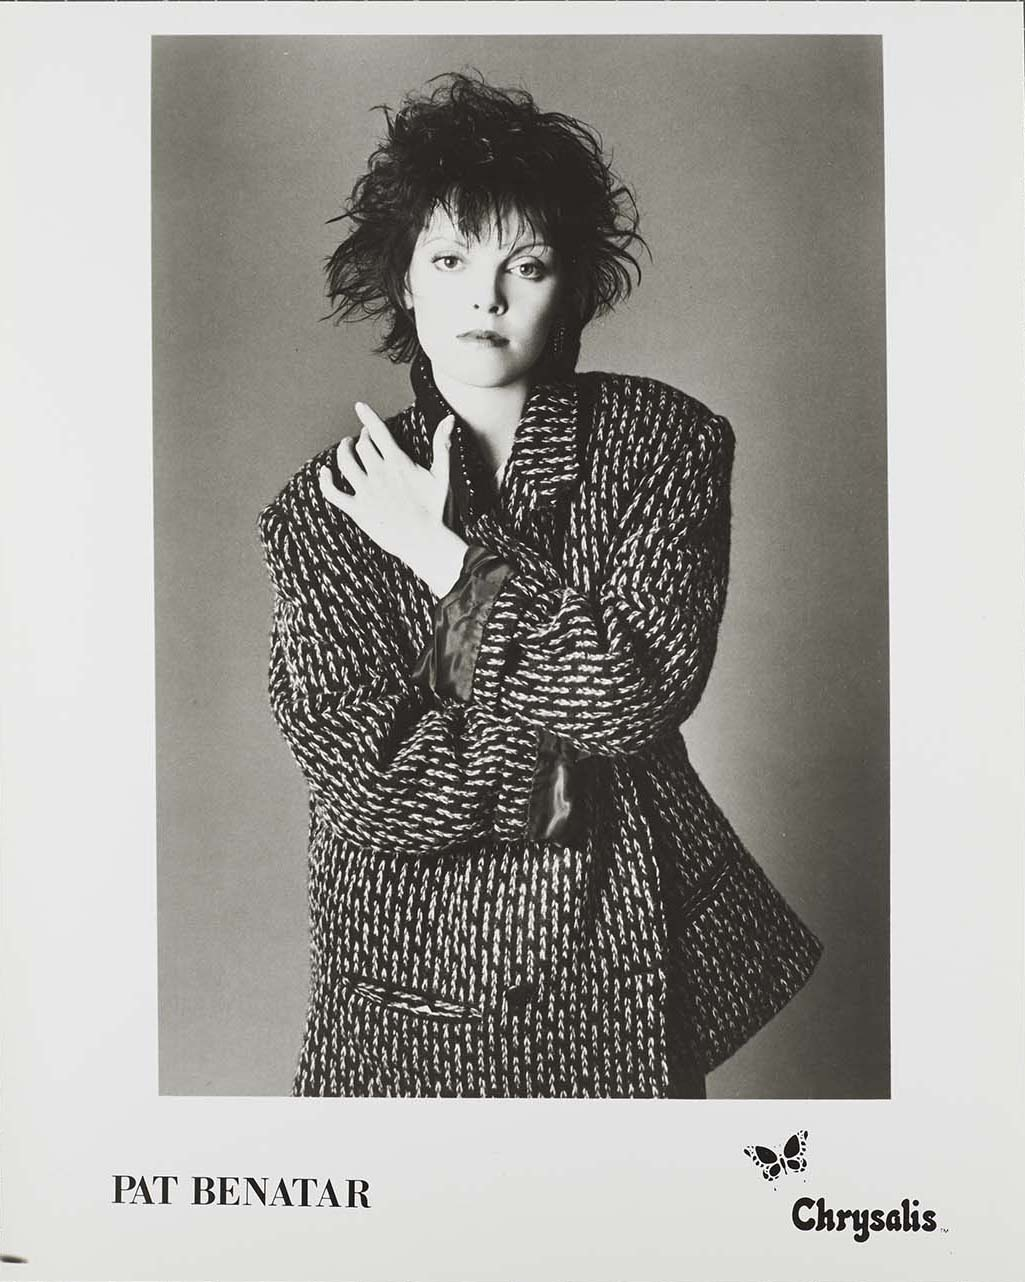 Pat Benatar promo photo